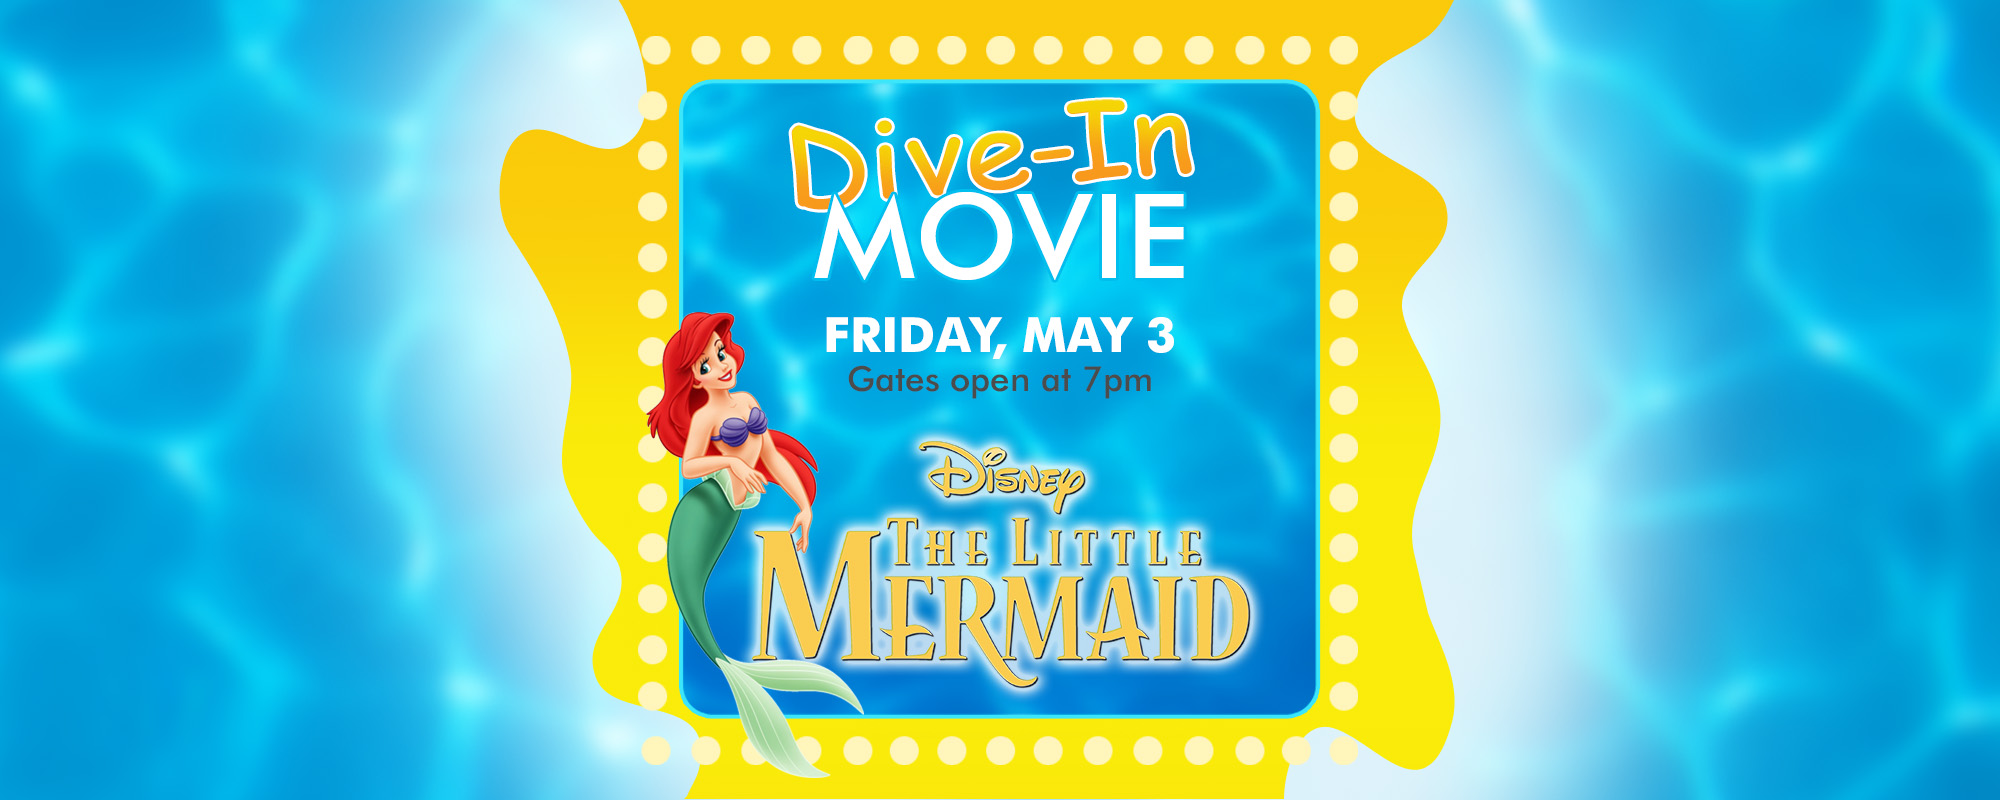 PDAC_DiveIn_LittleMermaid_WebSlider